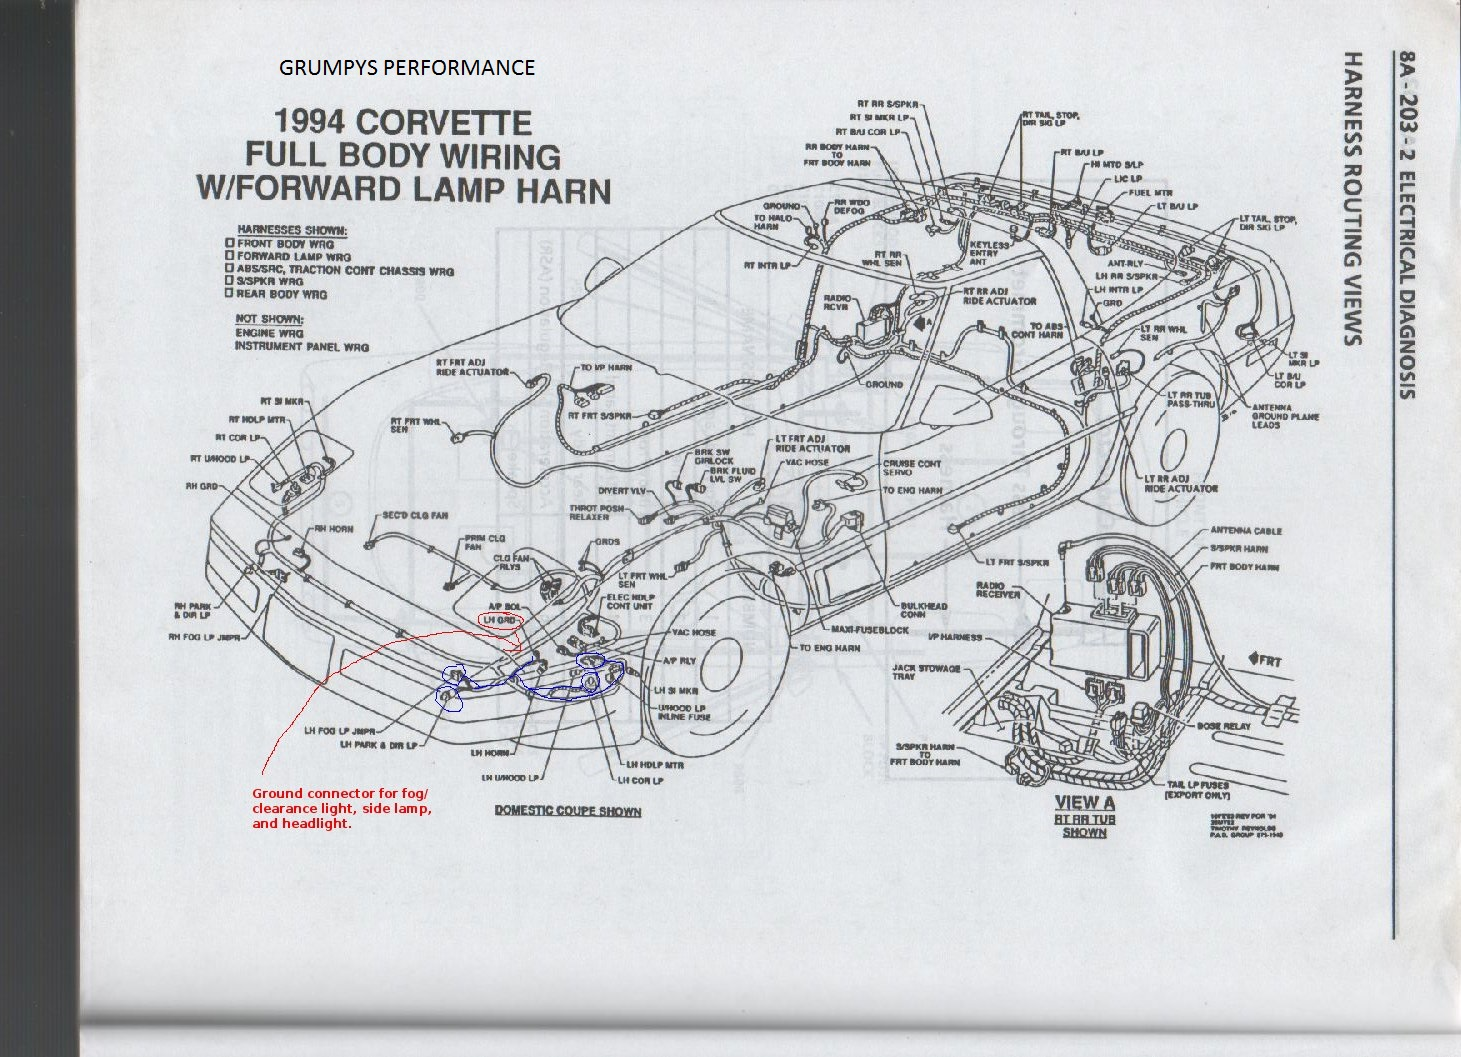 hight resolution of 1994 corvette wiring diagram 28 wiring diagram images 1994 corvette radio wiring diagram